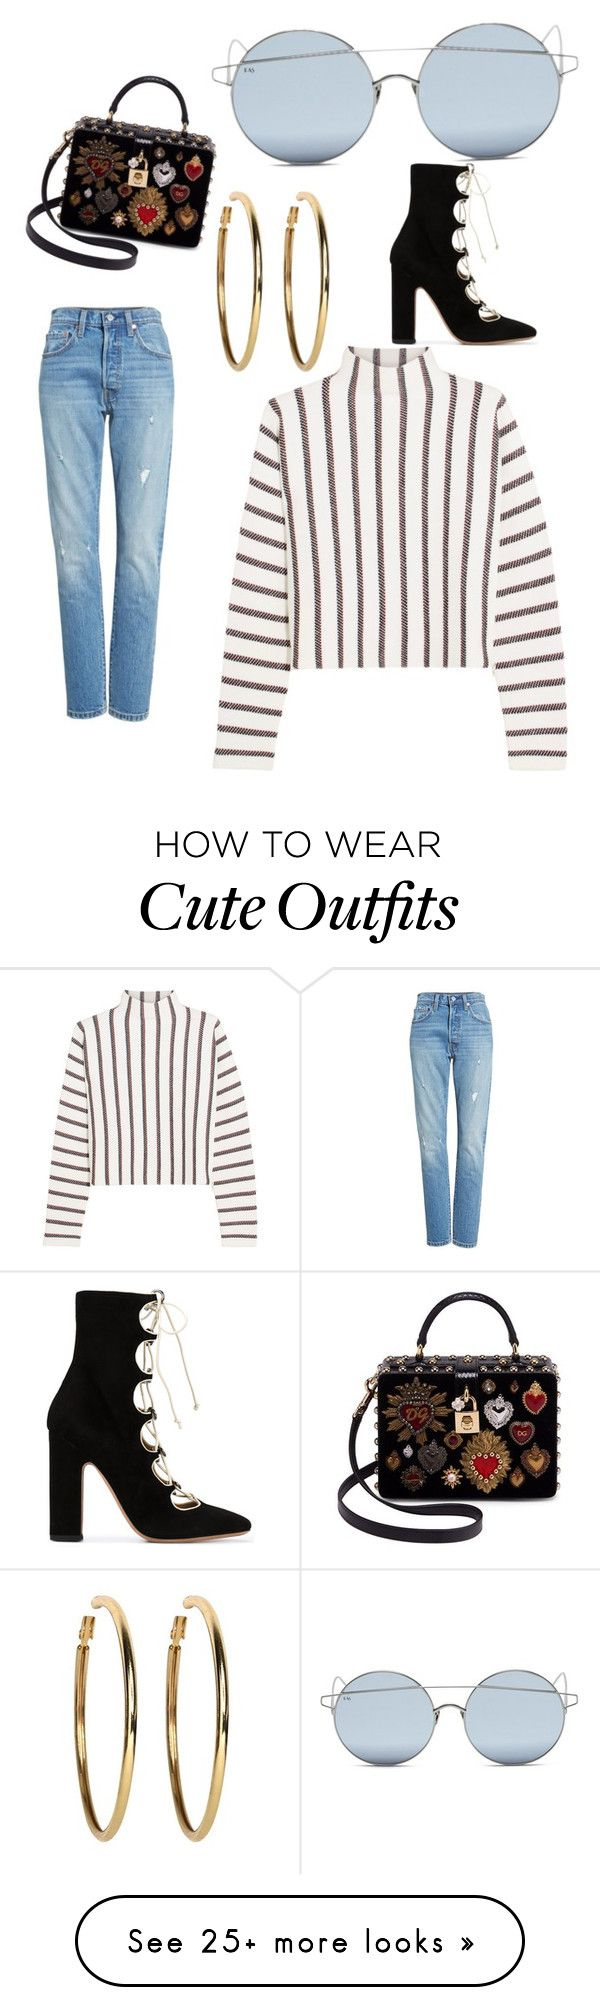 """Cute street outfit"" by mollymcharg on Polyvore featuring For Art's Sake, Maje, Levi's, Kenneth Jay Lane, Dolce&Gabbana and Valentino"